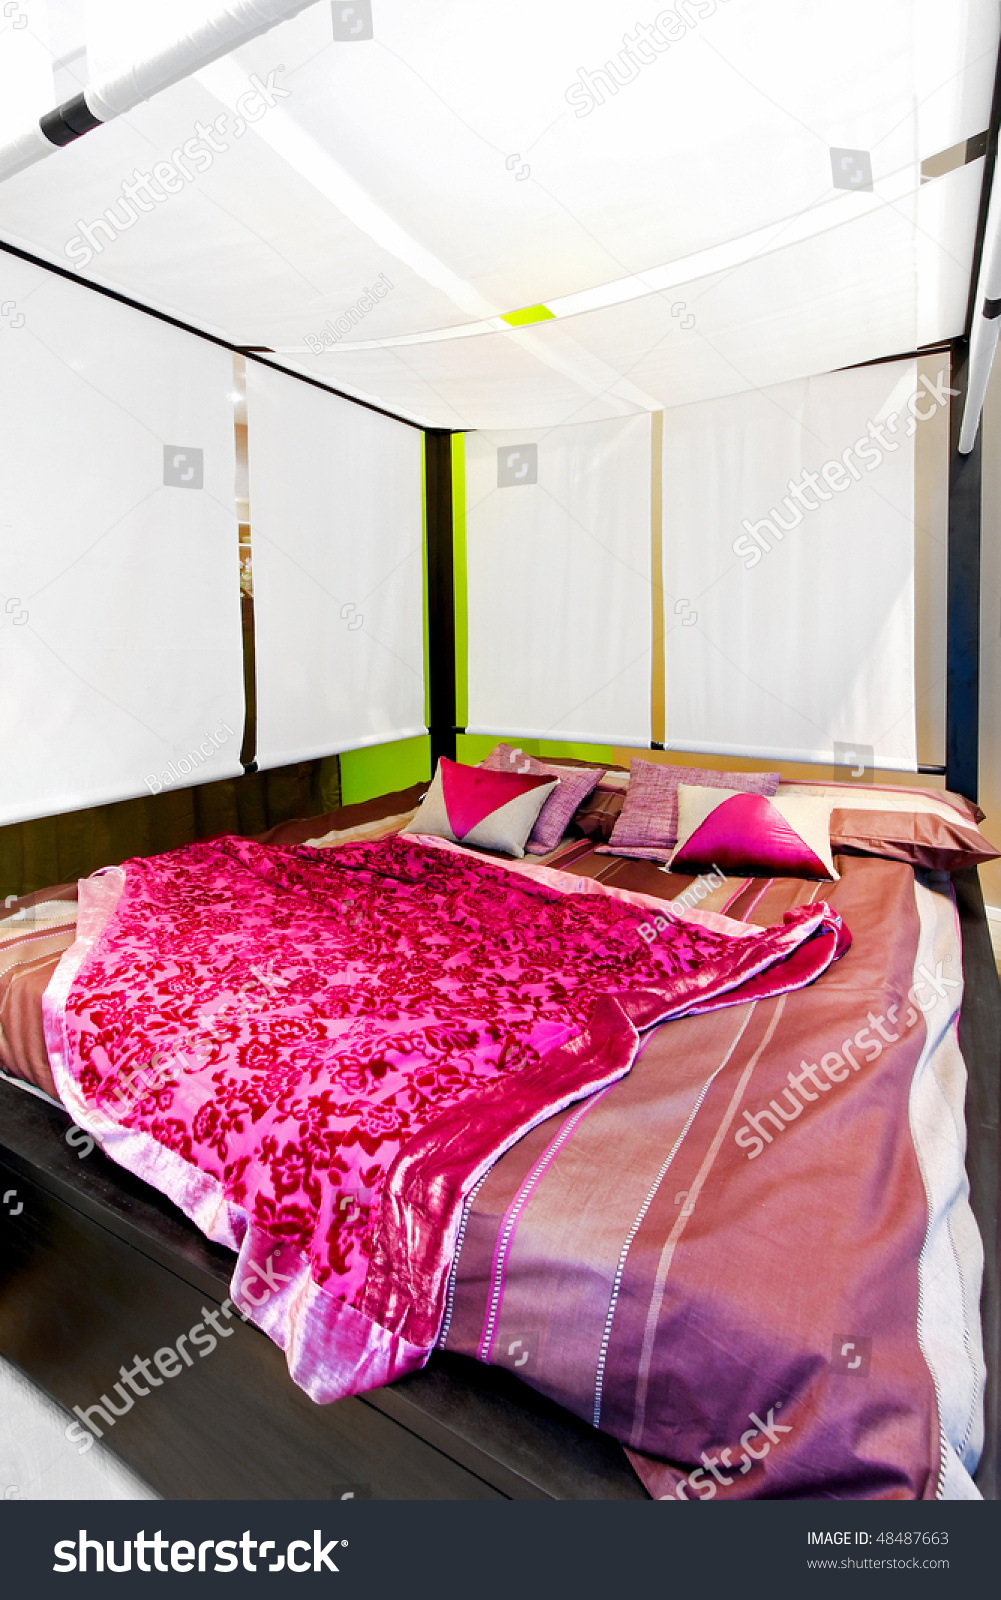 Interior Of Bedroom With Big Canopy Bed Stock Photo